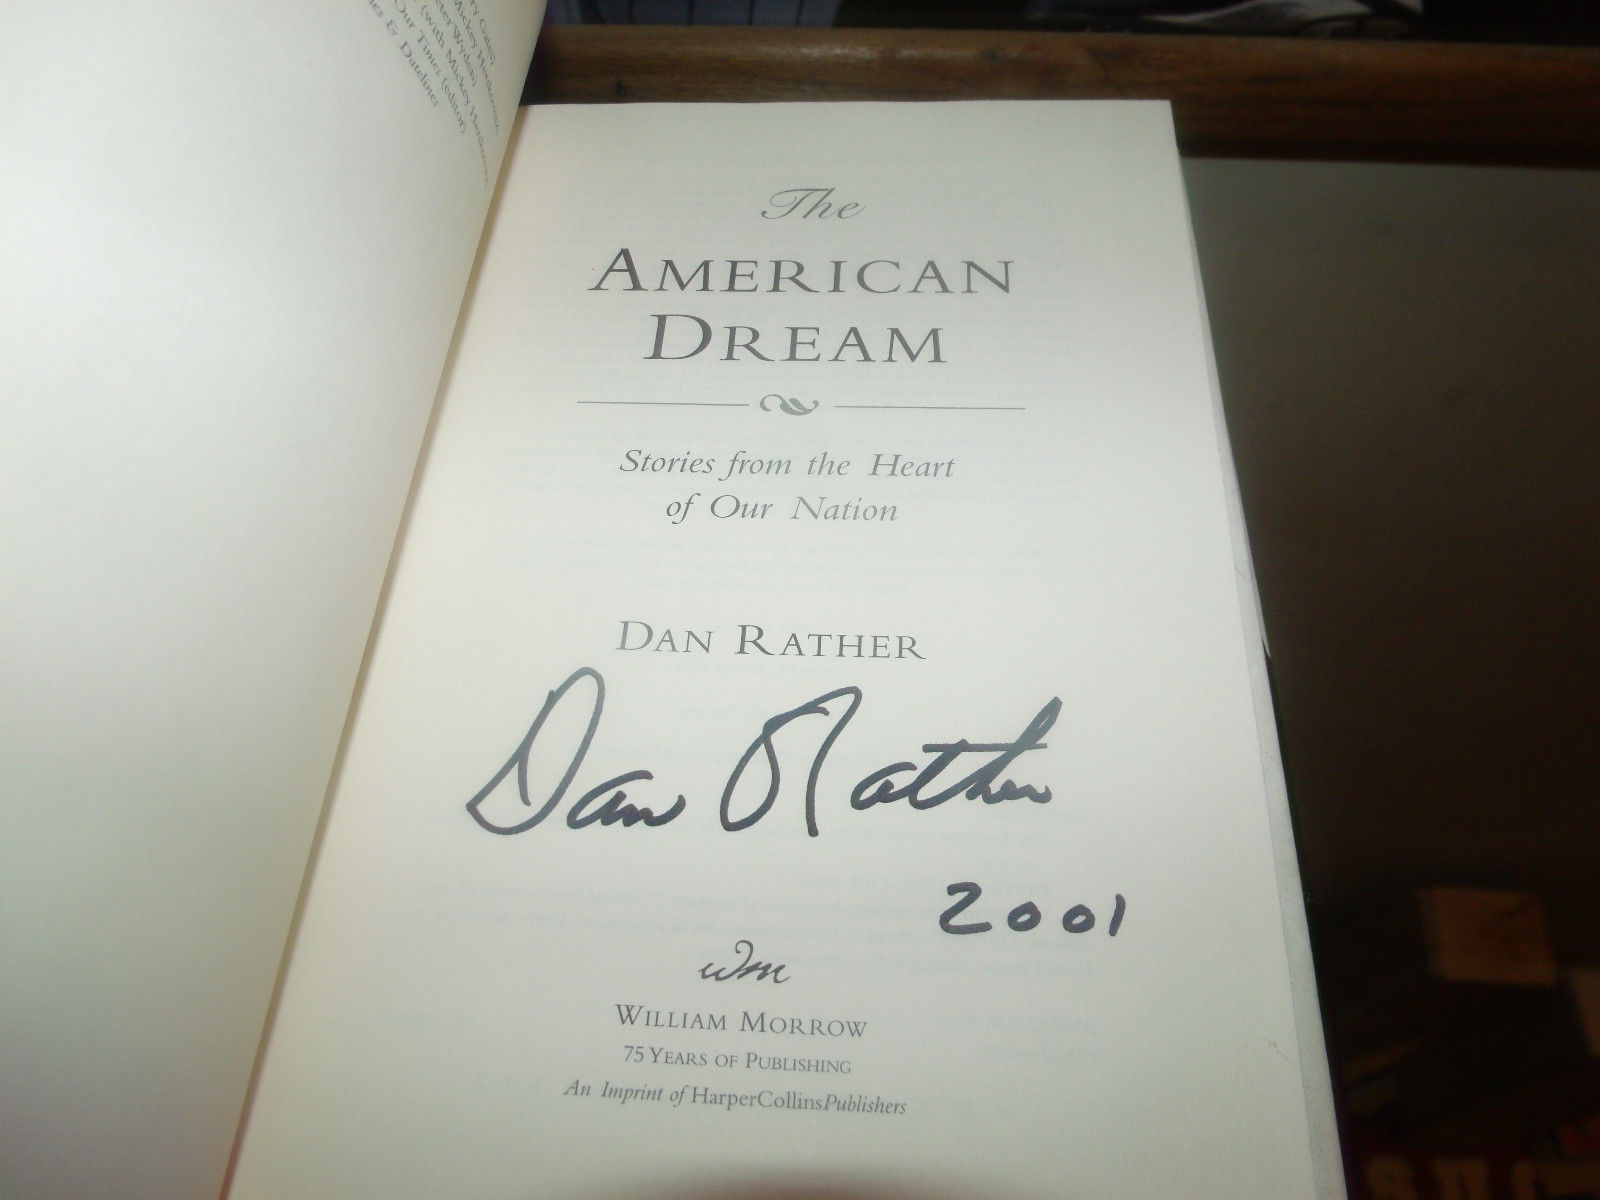 dan rather s american dream Available in: paperback in this inspirational new book, dan rather goes out in search of the american dream through interviews with ordinary people.